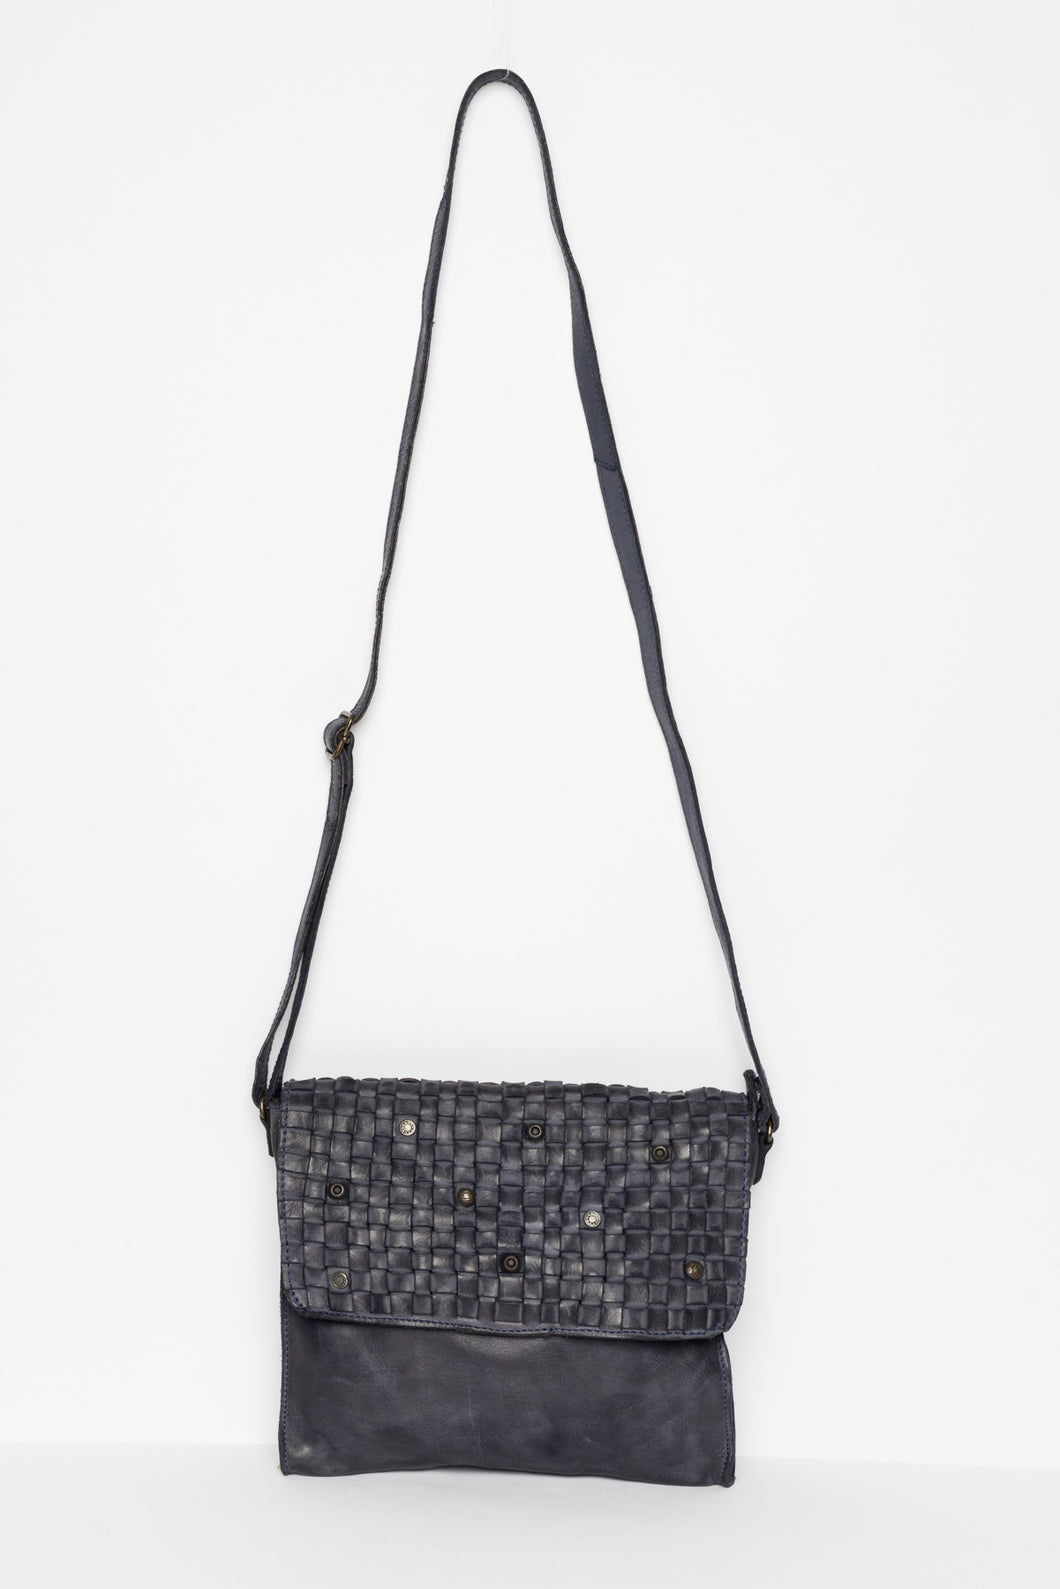 Tori Navy Leather Crossbody Bag - Blue Bungalow